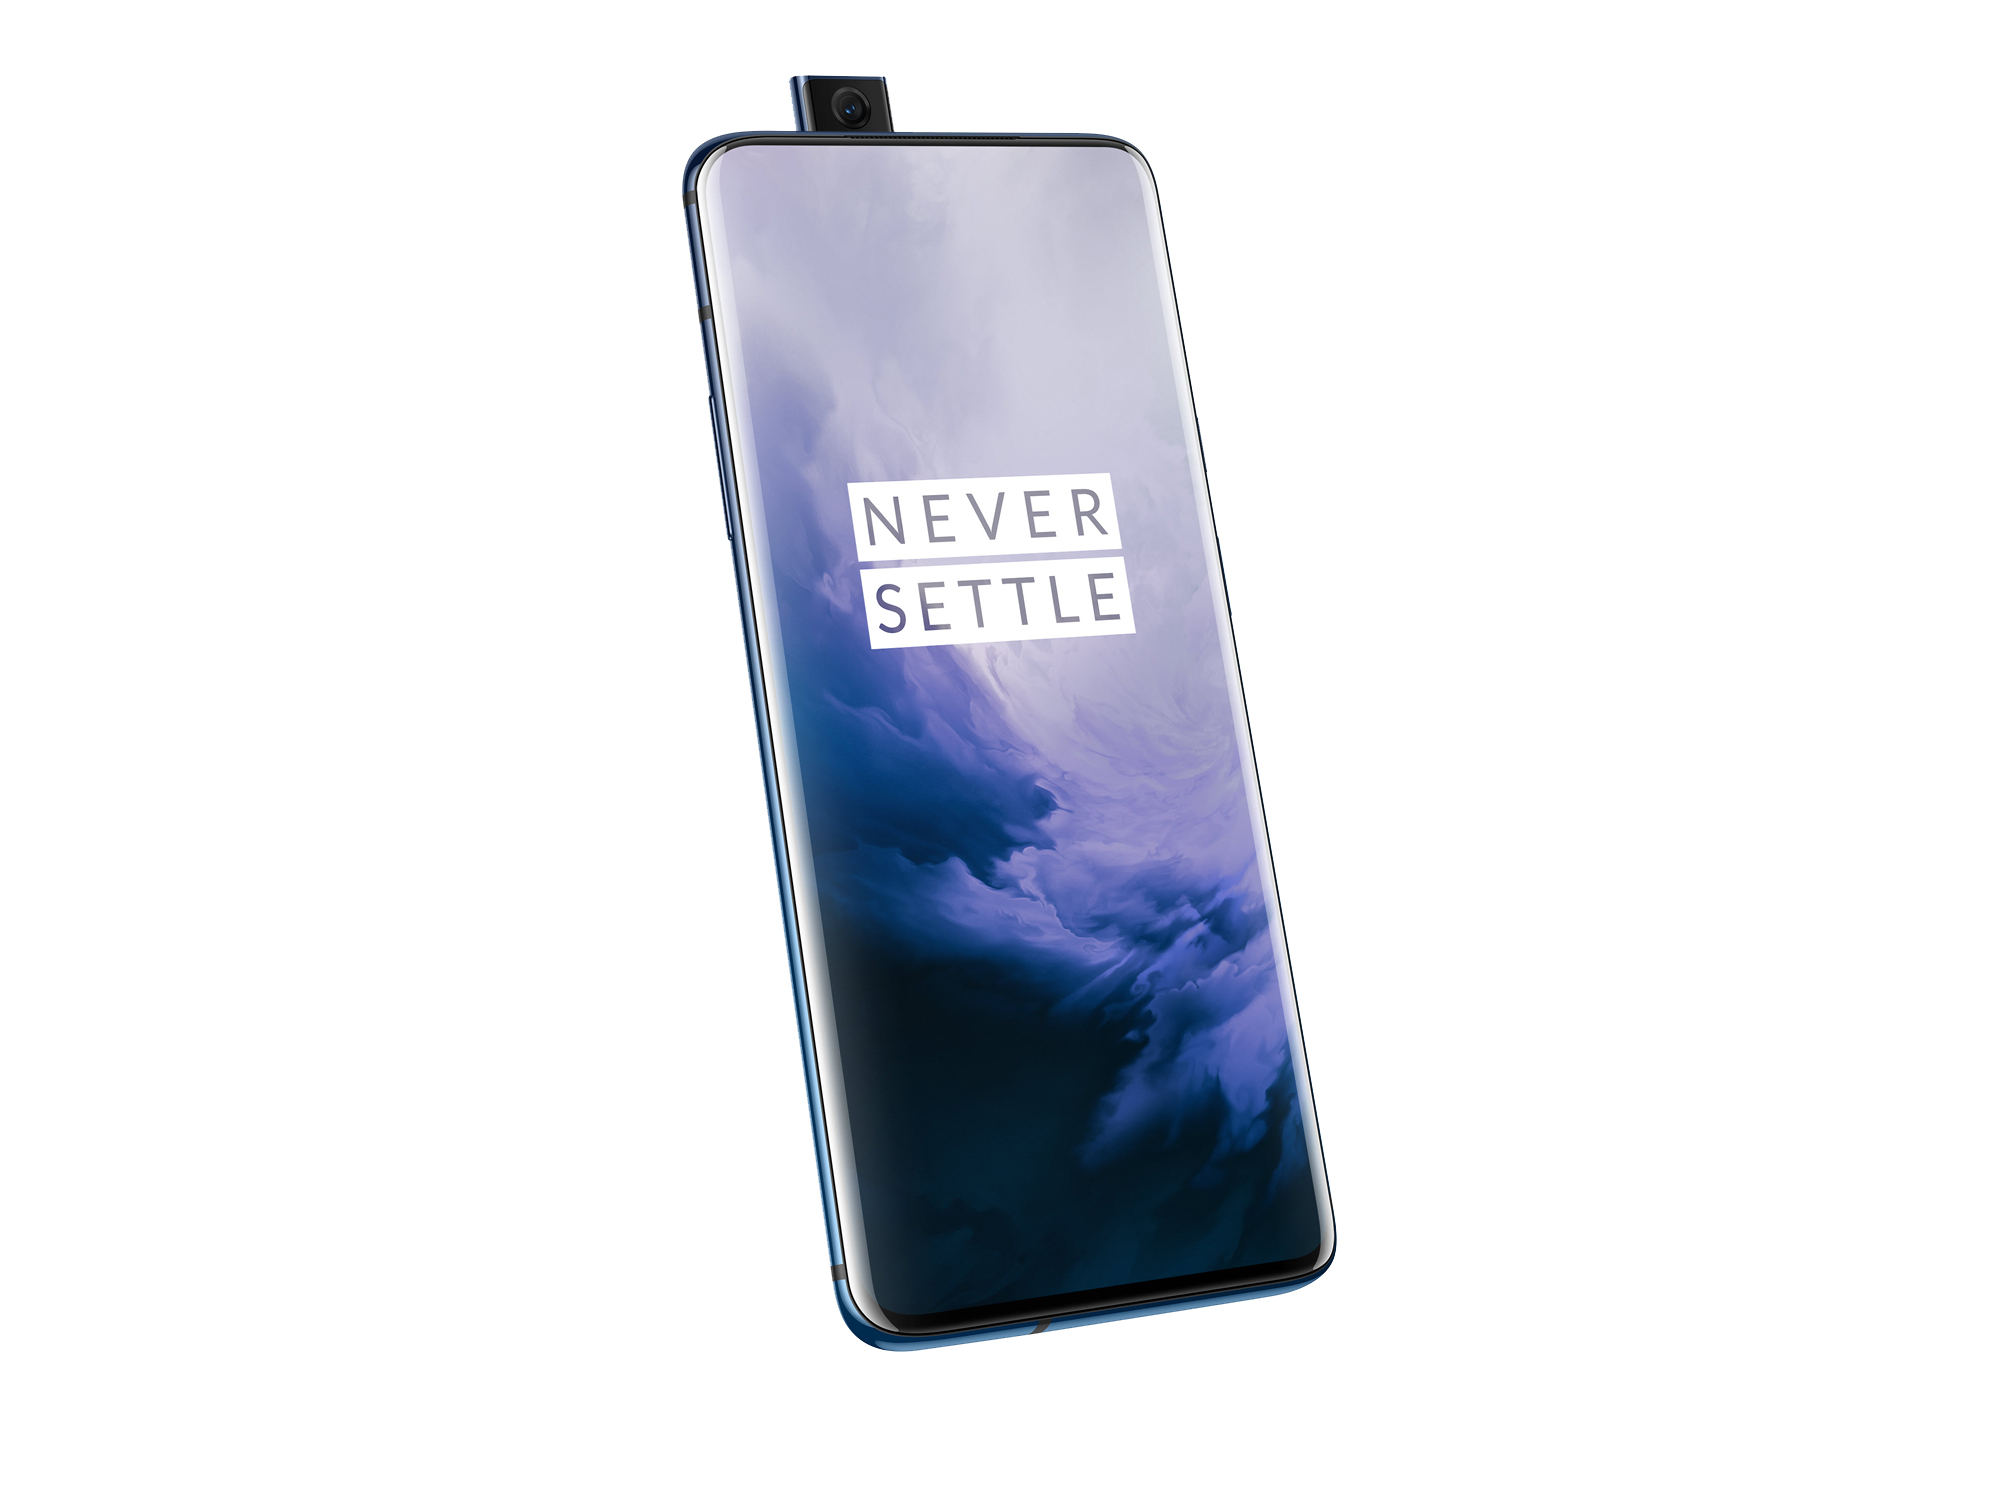 OnePlus 7 Pro Smartphone Review - NotebookCheck net Reviews